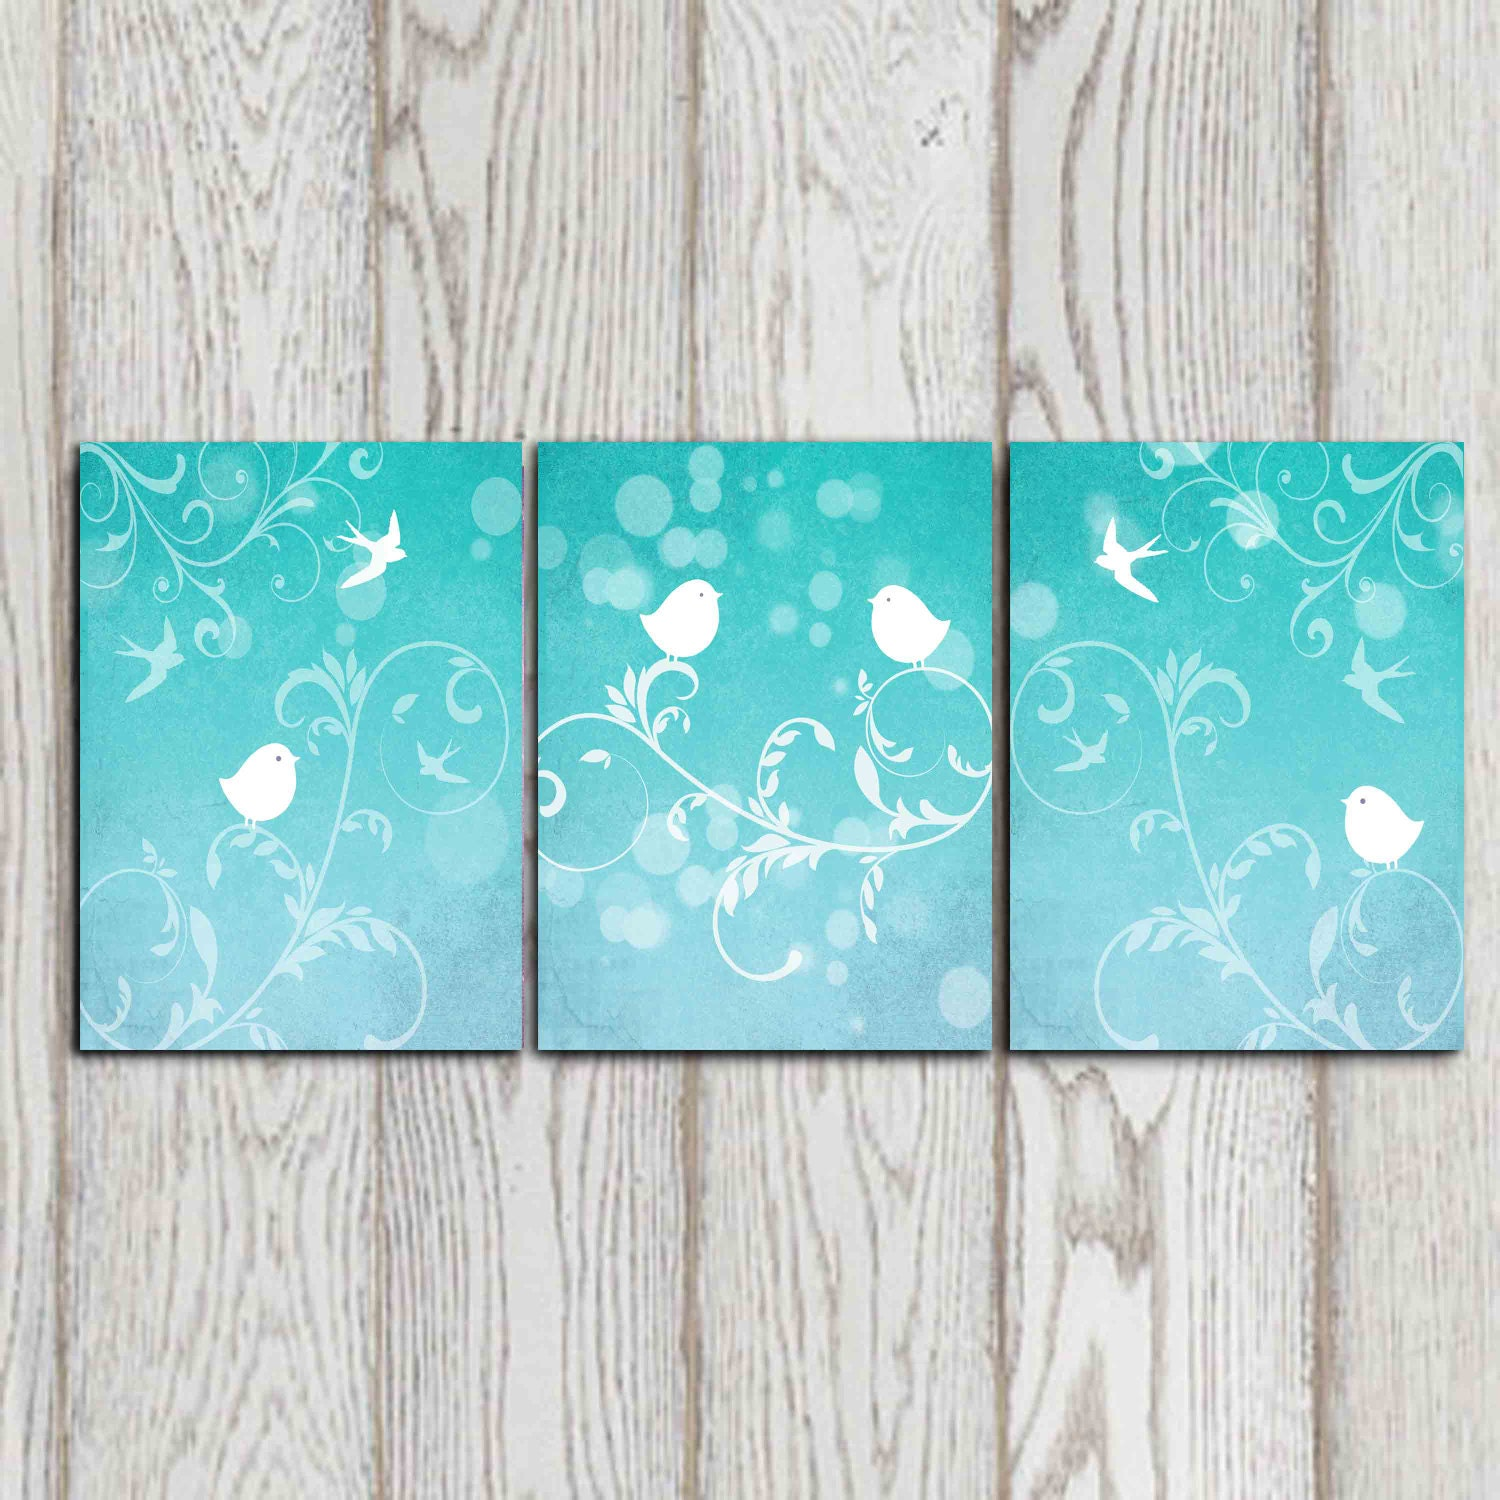 Set of 3 bird art prints turquoise wall decor bedroom decor Best wall decor